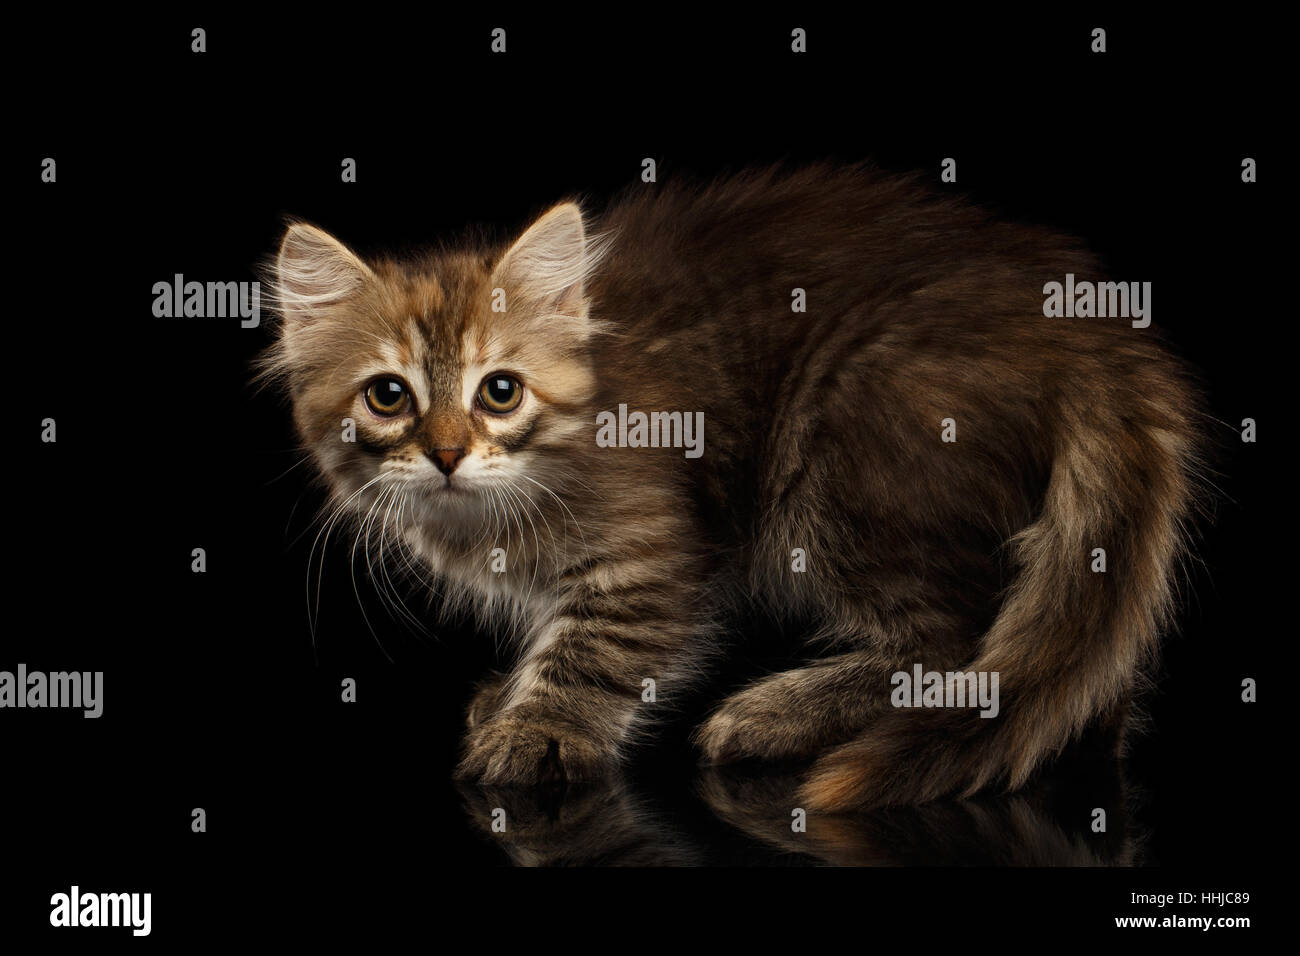 Siberian kitty on isolated black background - Stock Image